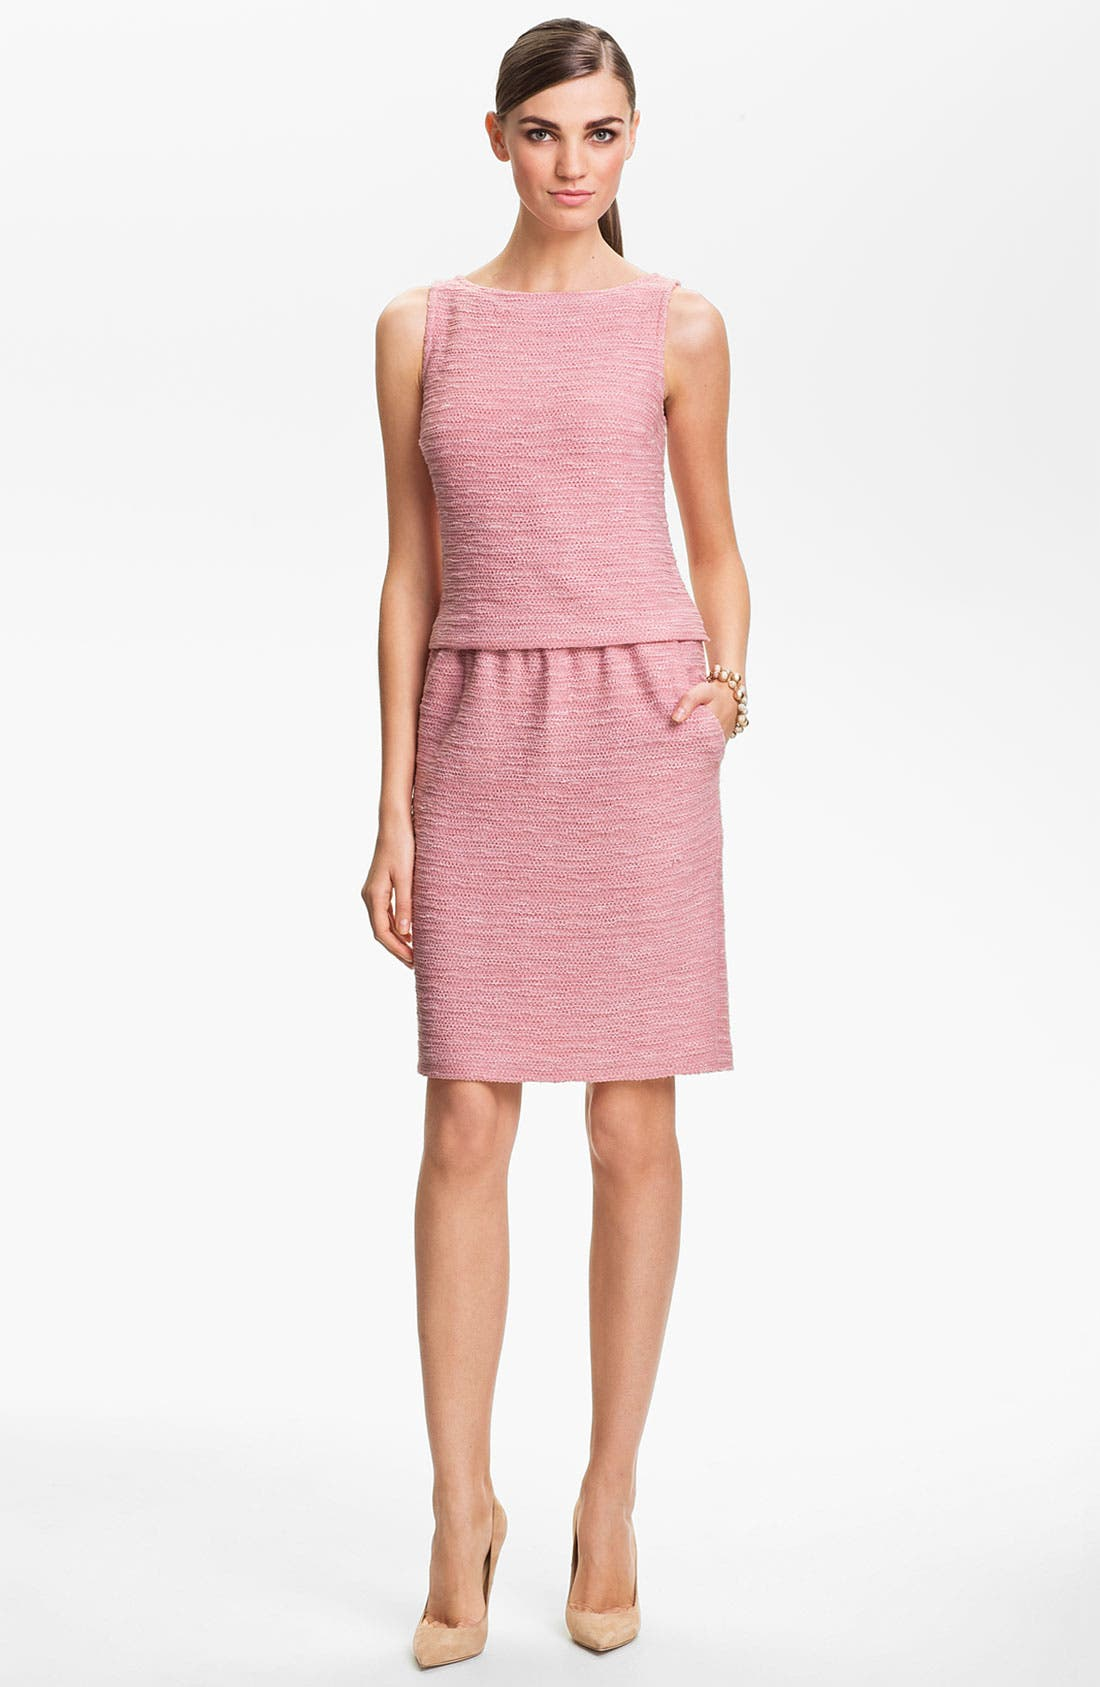 Alternate Image 1 Selected - St. John Collection 'New Shantung' Knit Dress